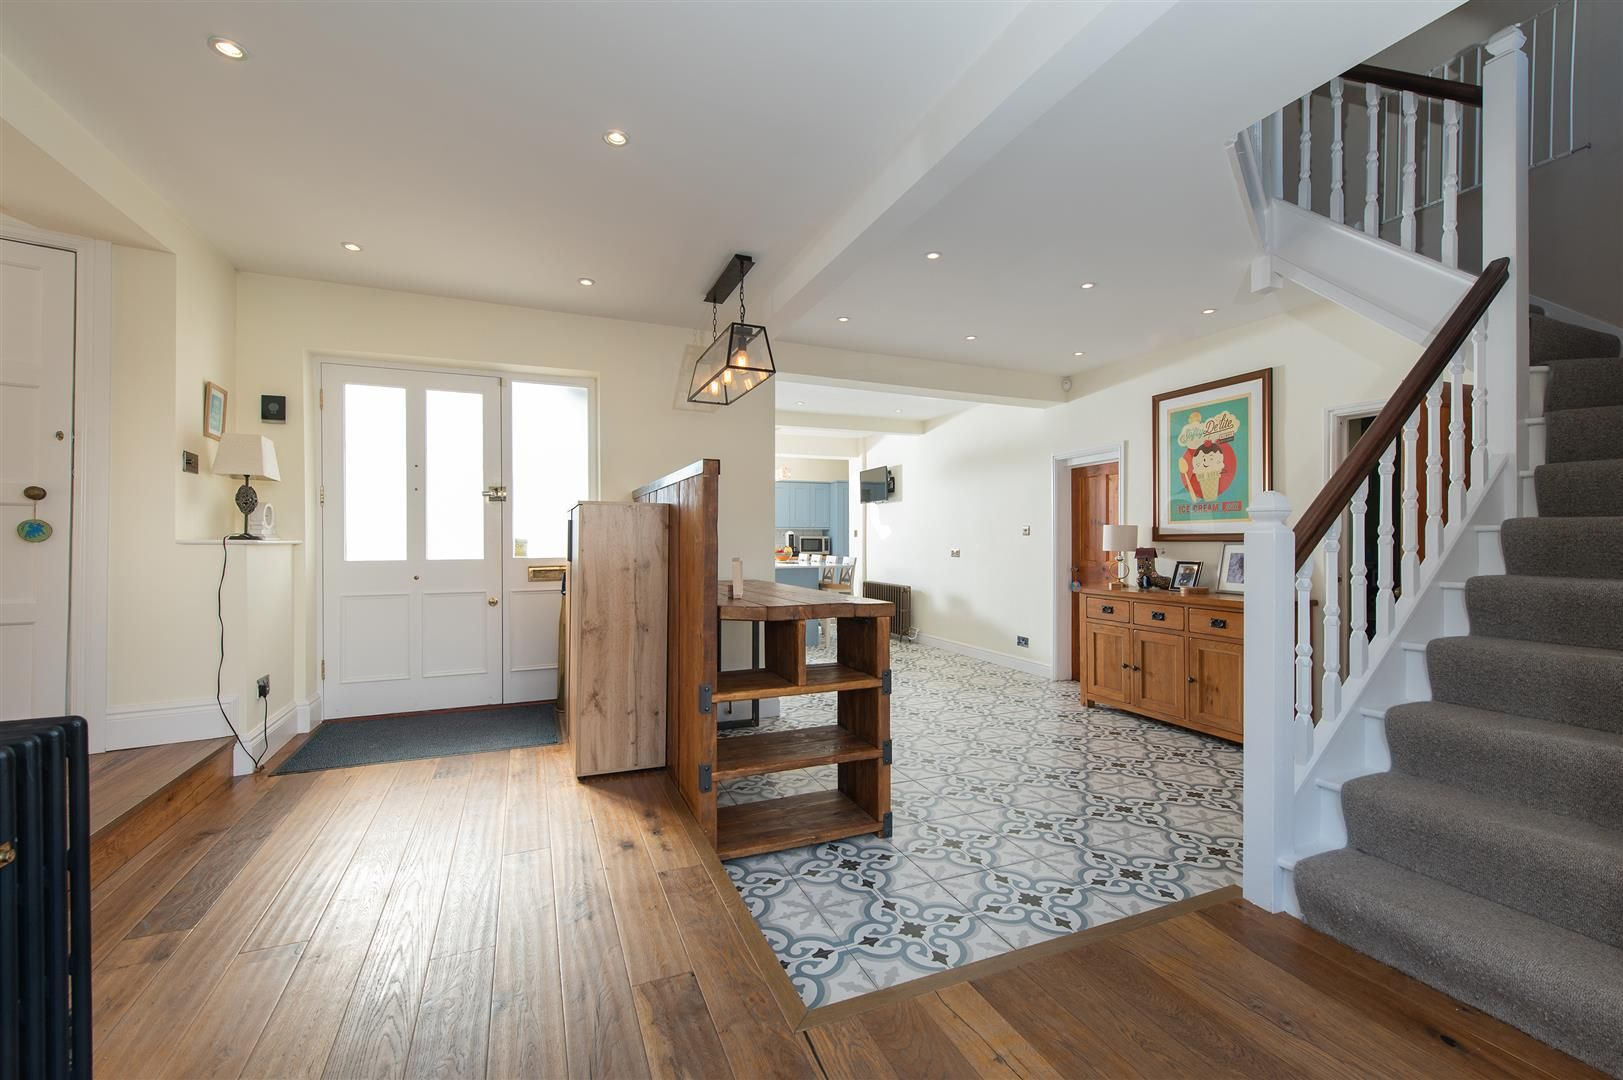 4 bed detached for sale in Blakedown  - Property Image 6